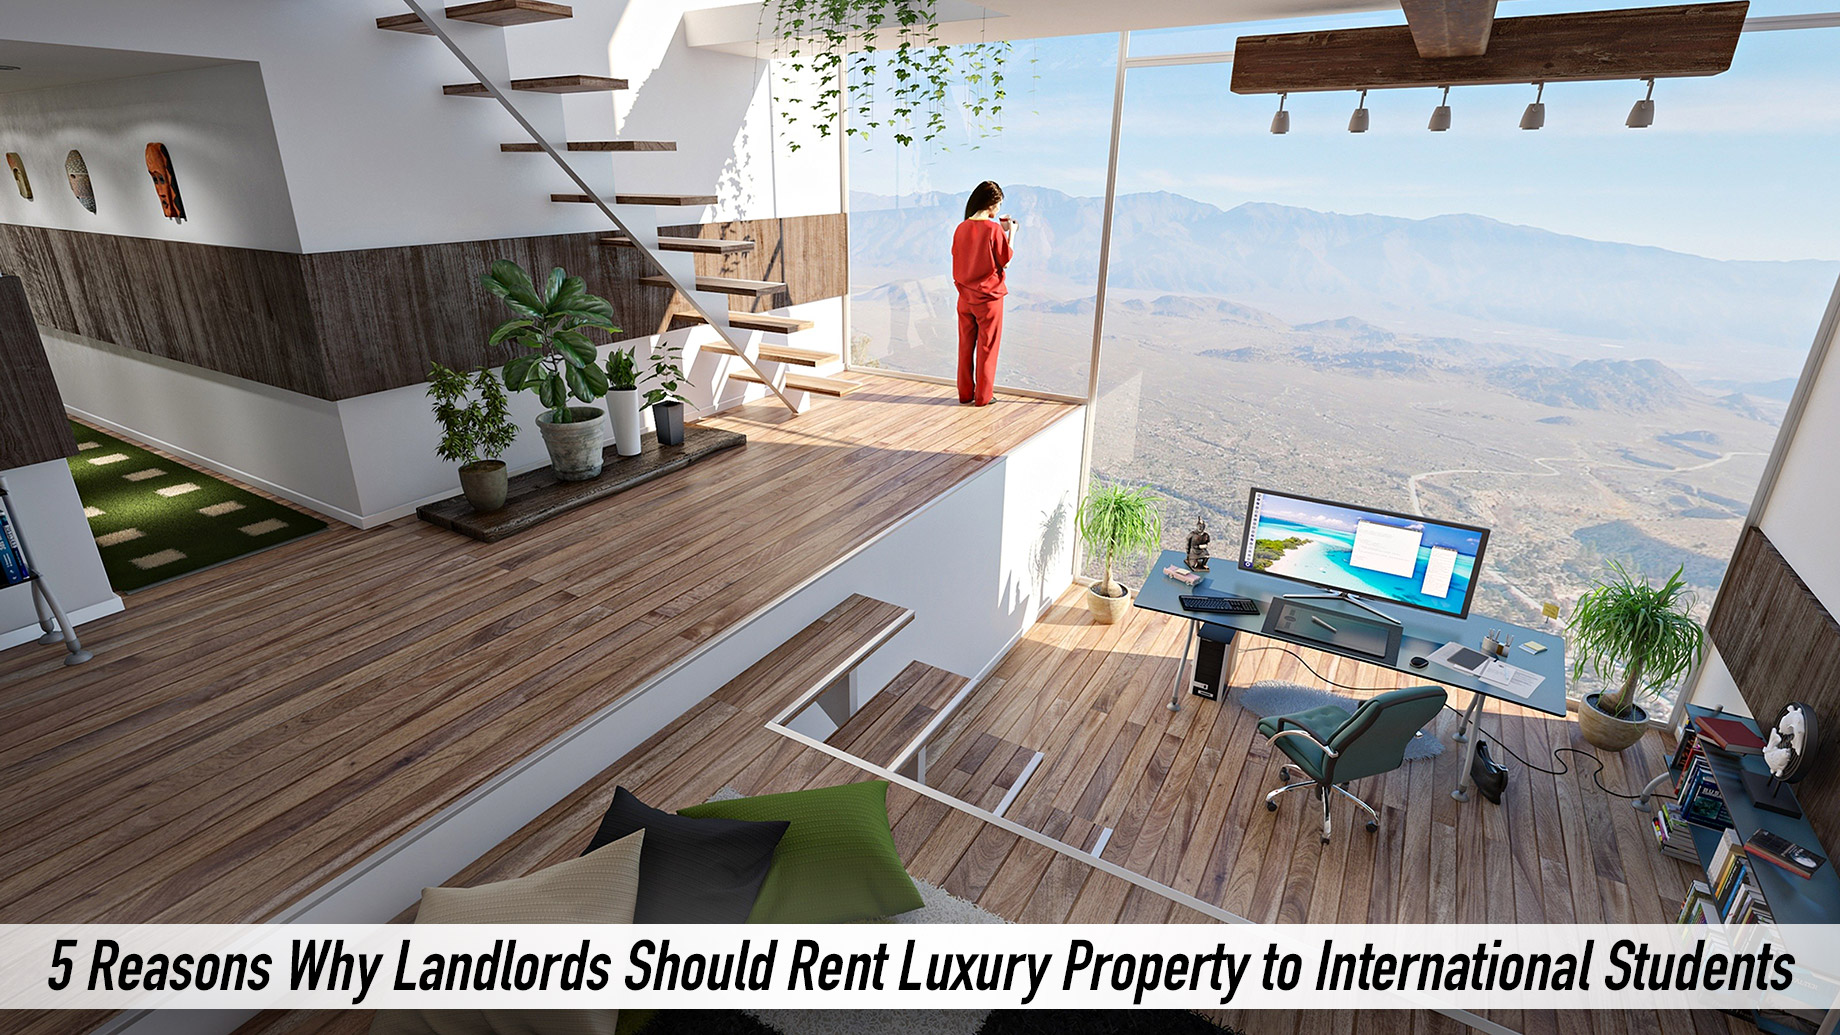 5 Reasons Why Landlords Should Rent Luxury Property to International Students